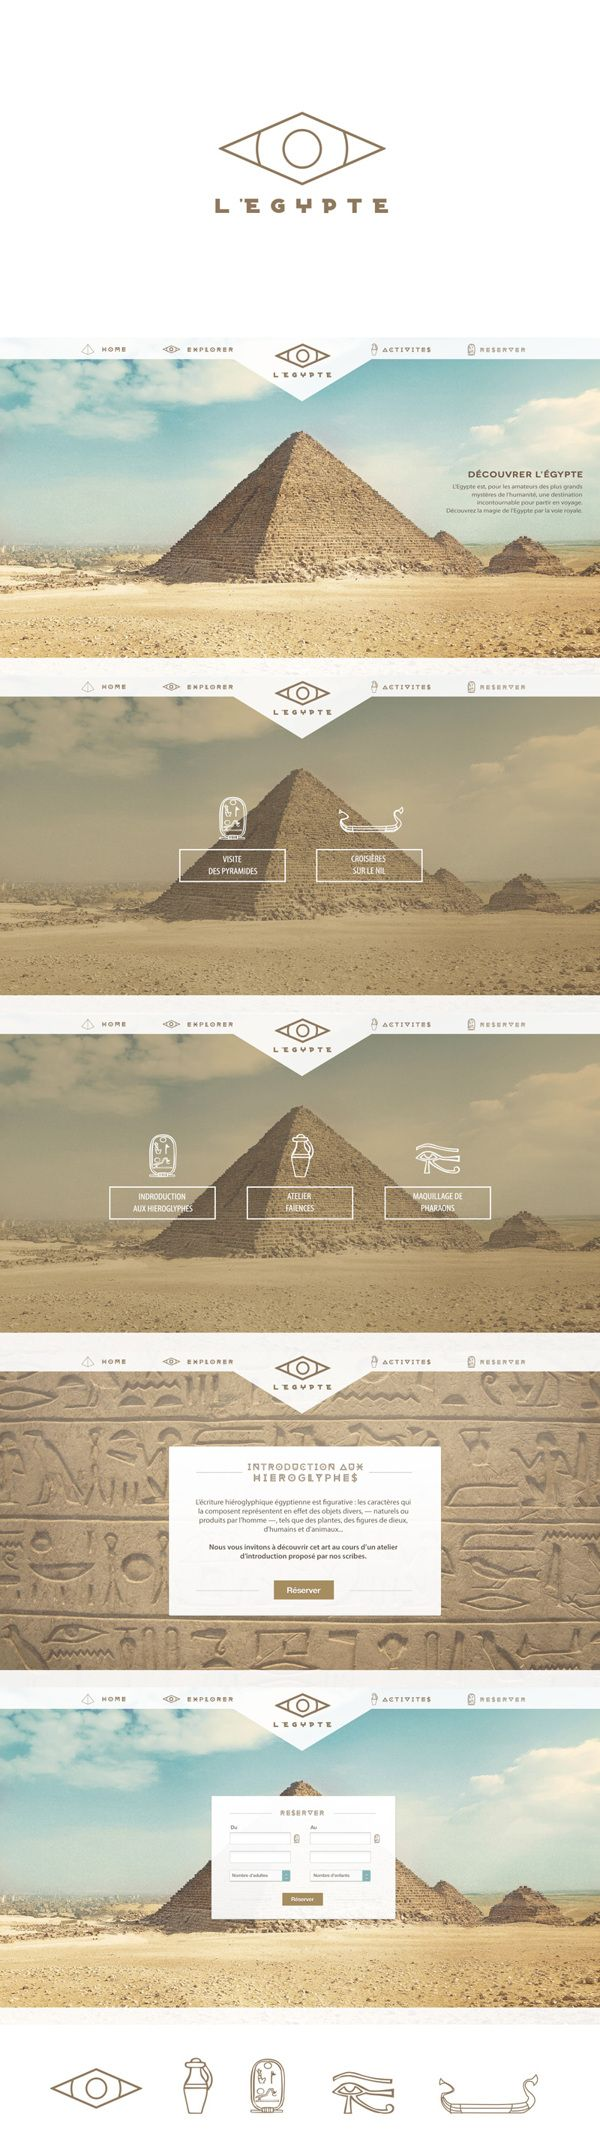 Best Web Design on the Internet, Egypt #webdesign #websitedesign #website #design http://www.pinterest.com/aldenchong/